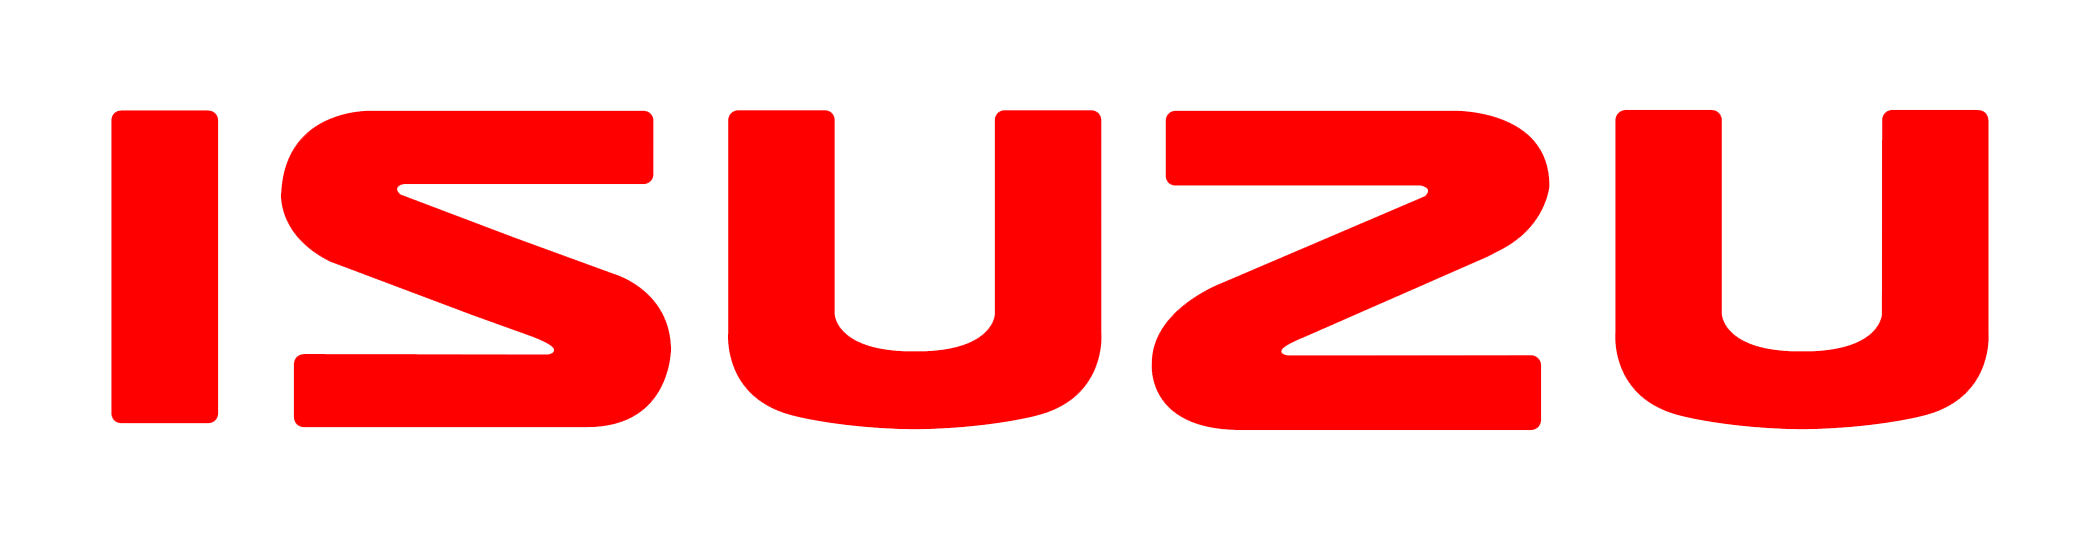 Isuzu Logo - Isuzu Logo Meaning and History. Symbol Isuzu | World Cars Brands